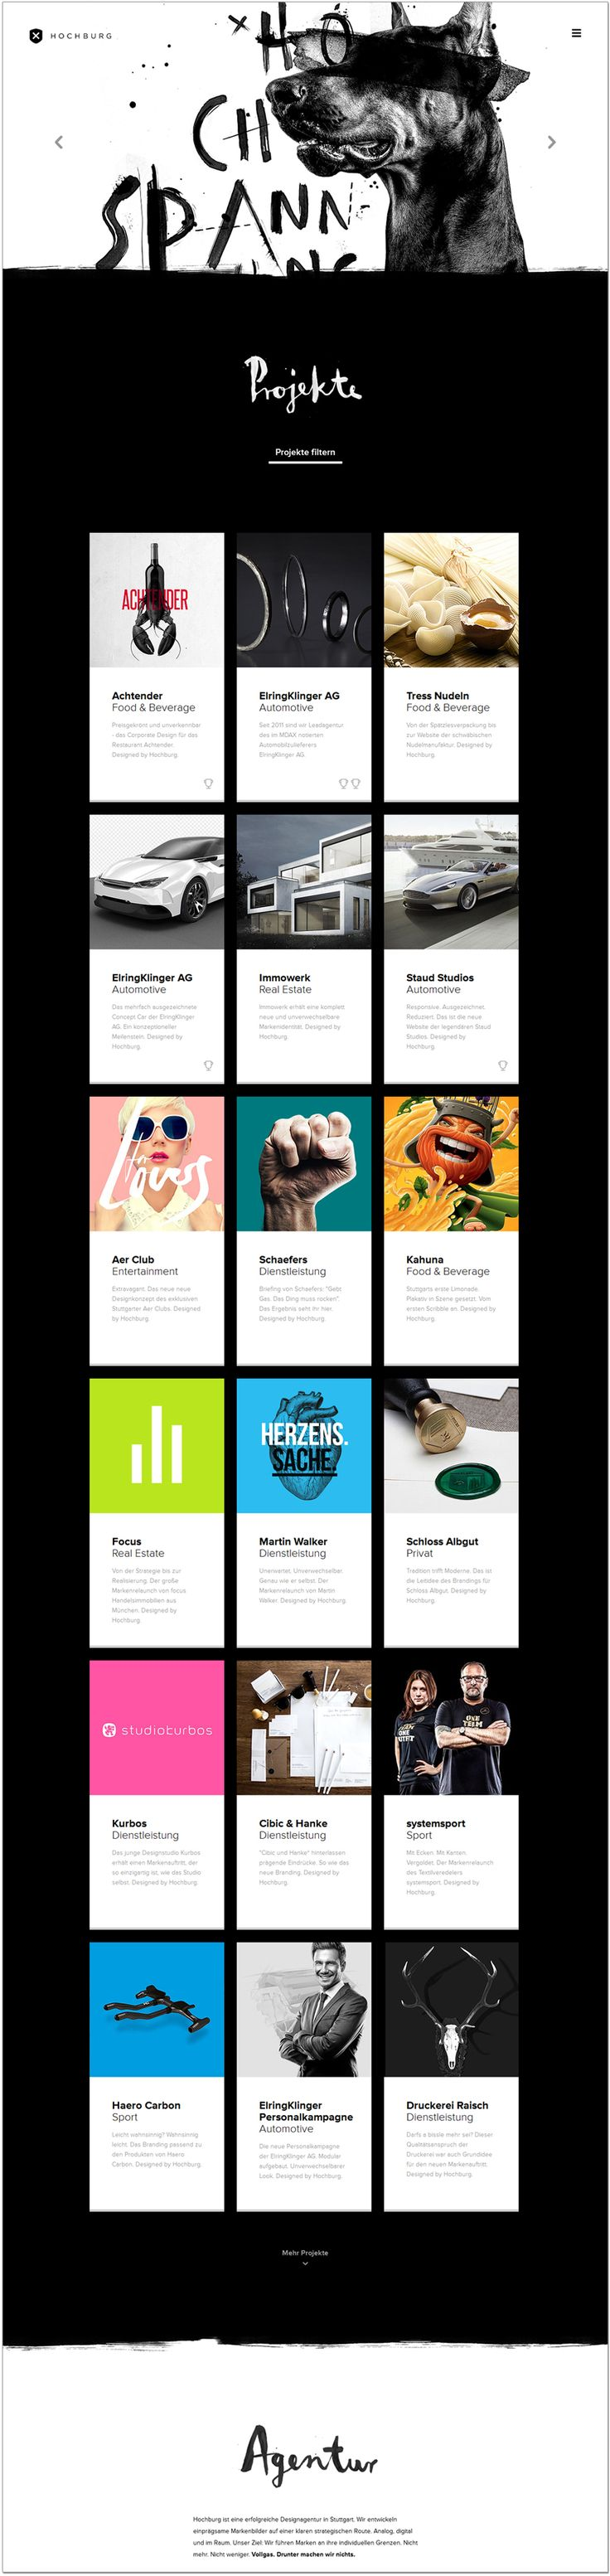 444 best L A Y O U T images on Pinterest | Layout design, Page ...